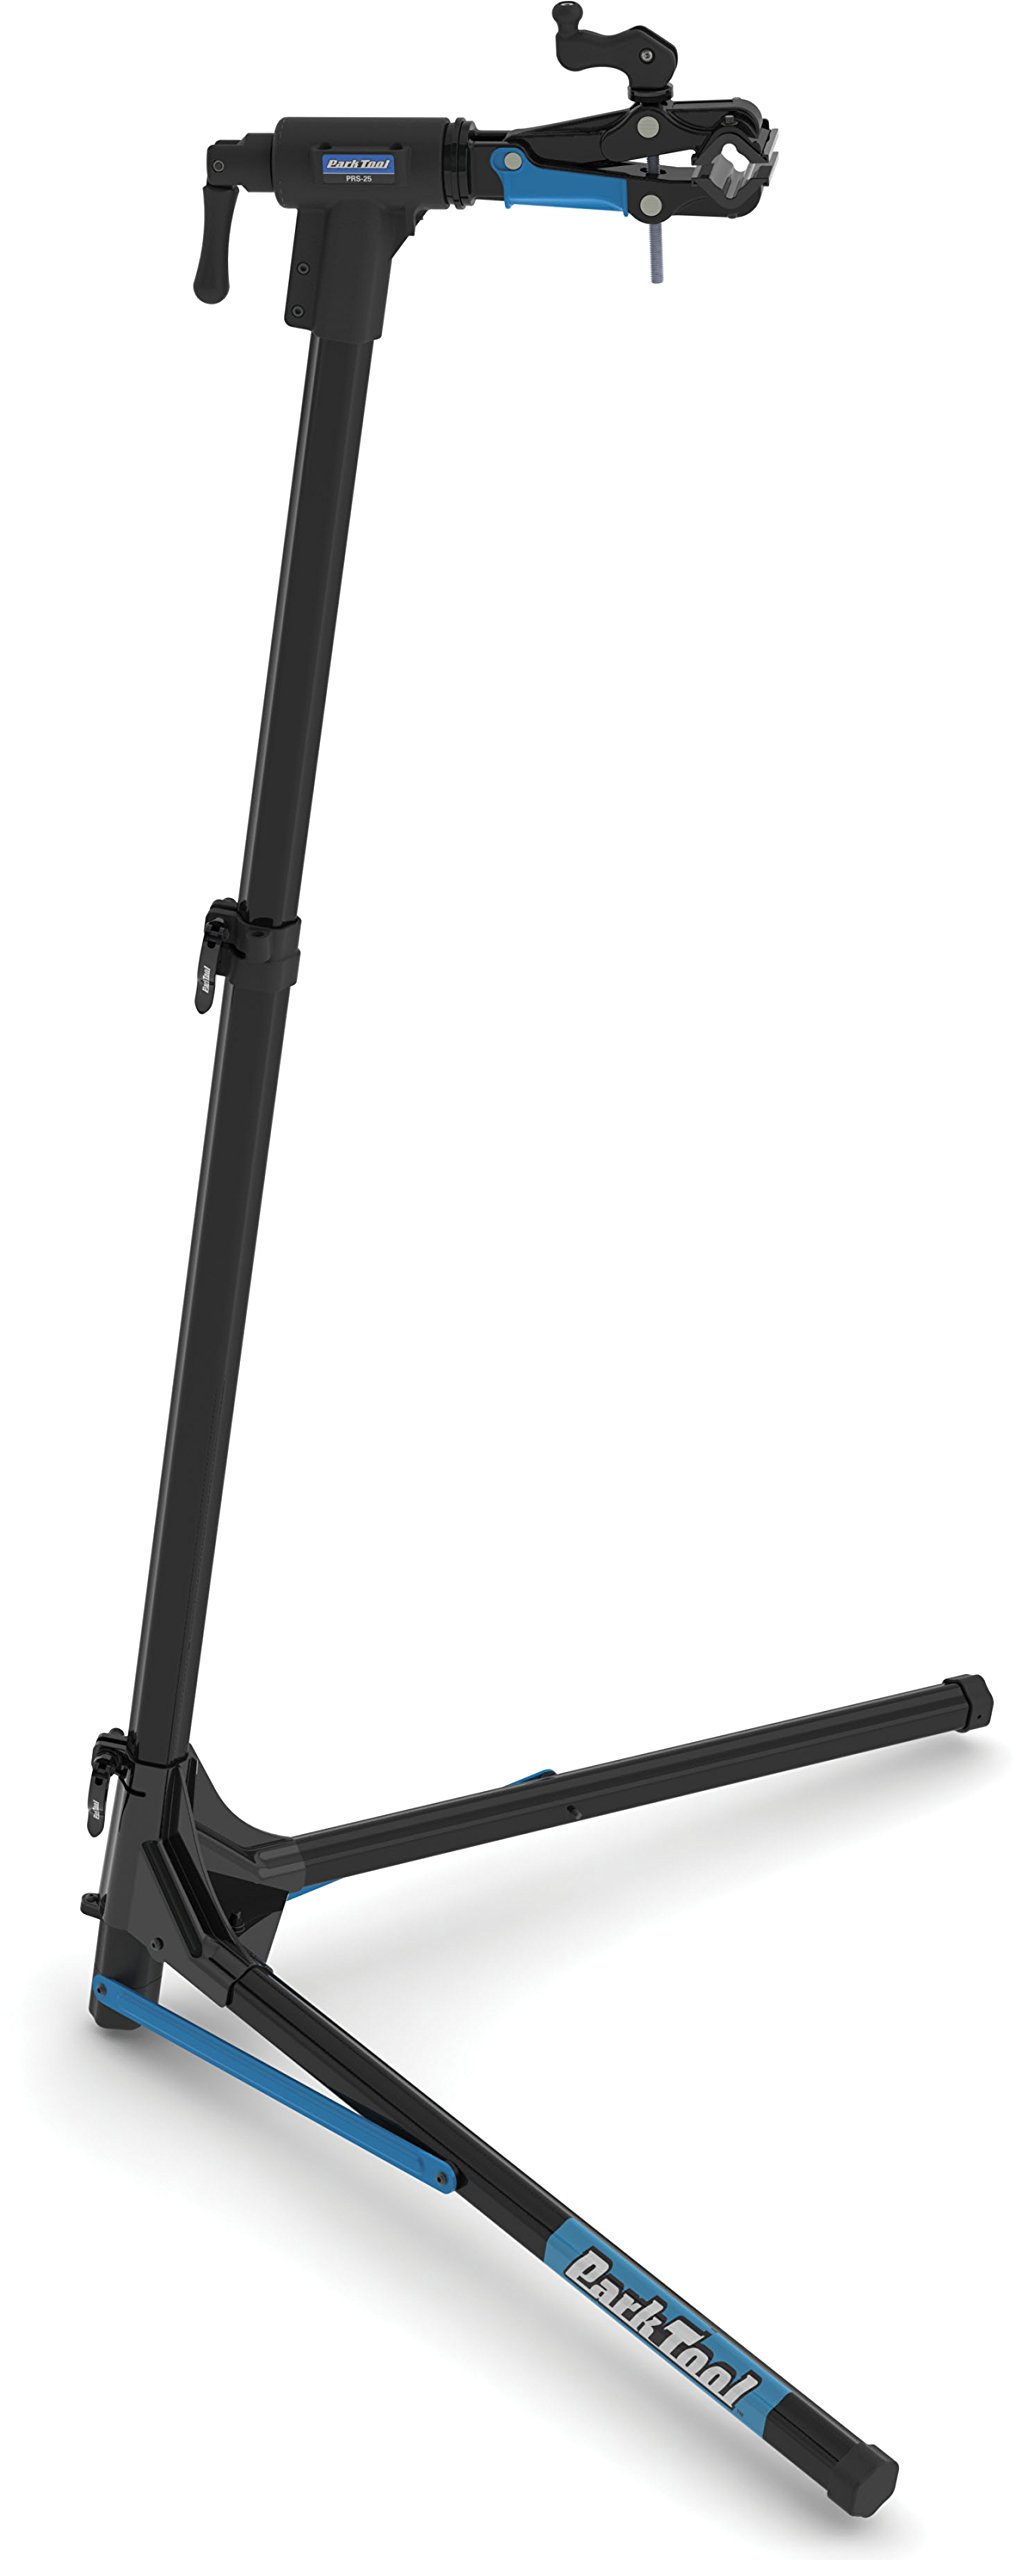 Park Tool Team Issue Portable Repair Stand PRS 25